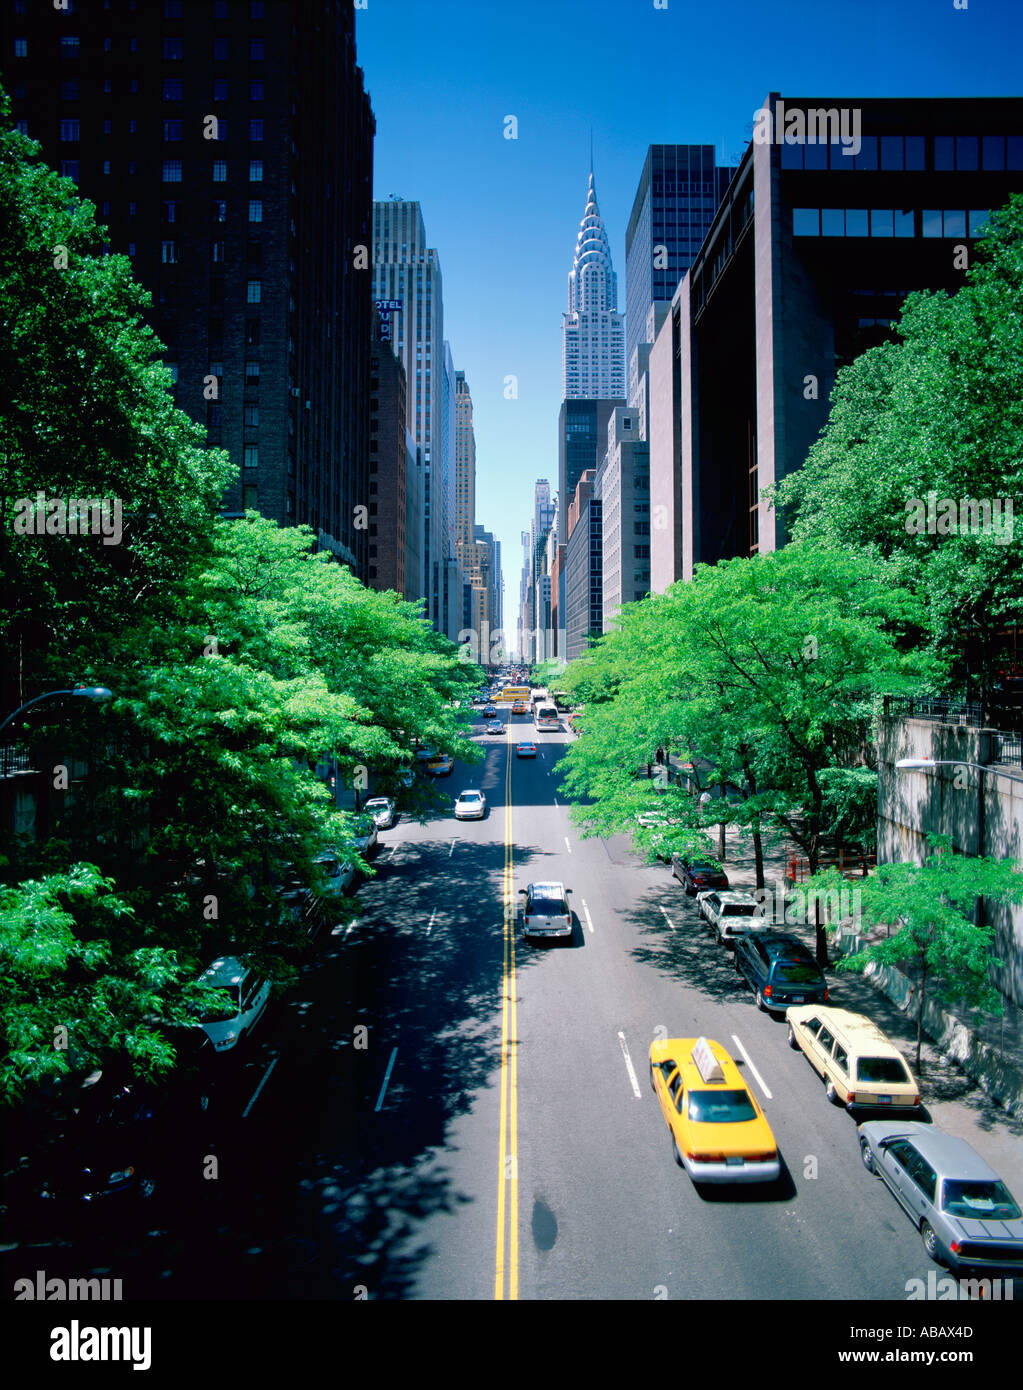 USA NEW YORK 42ND ST SHOWING CHRYSLER BUILDING YELLOW CAB - Stock Image